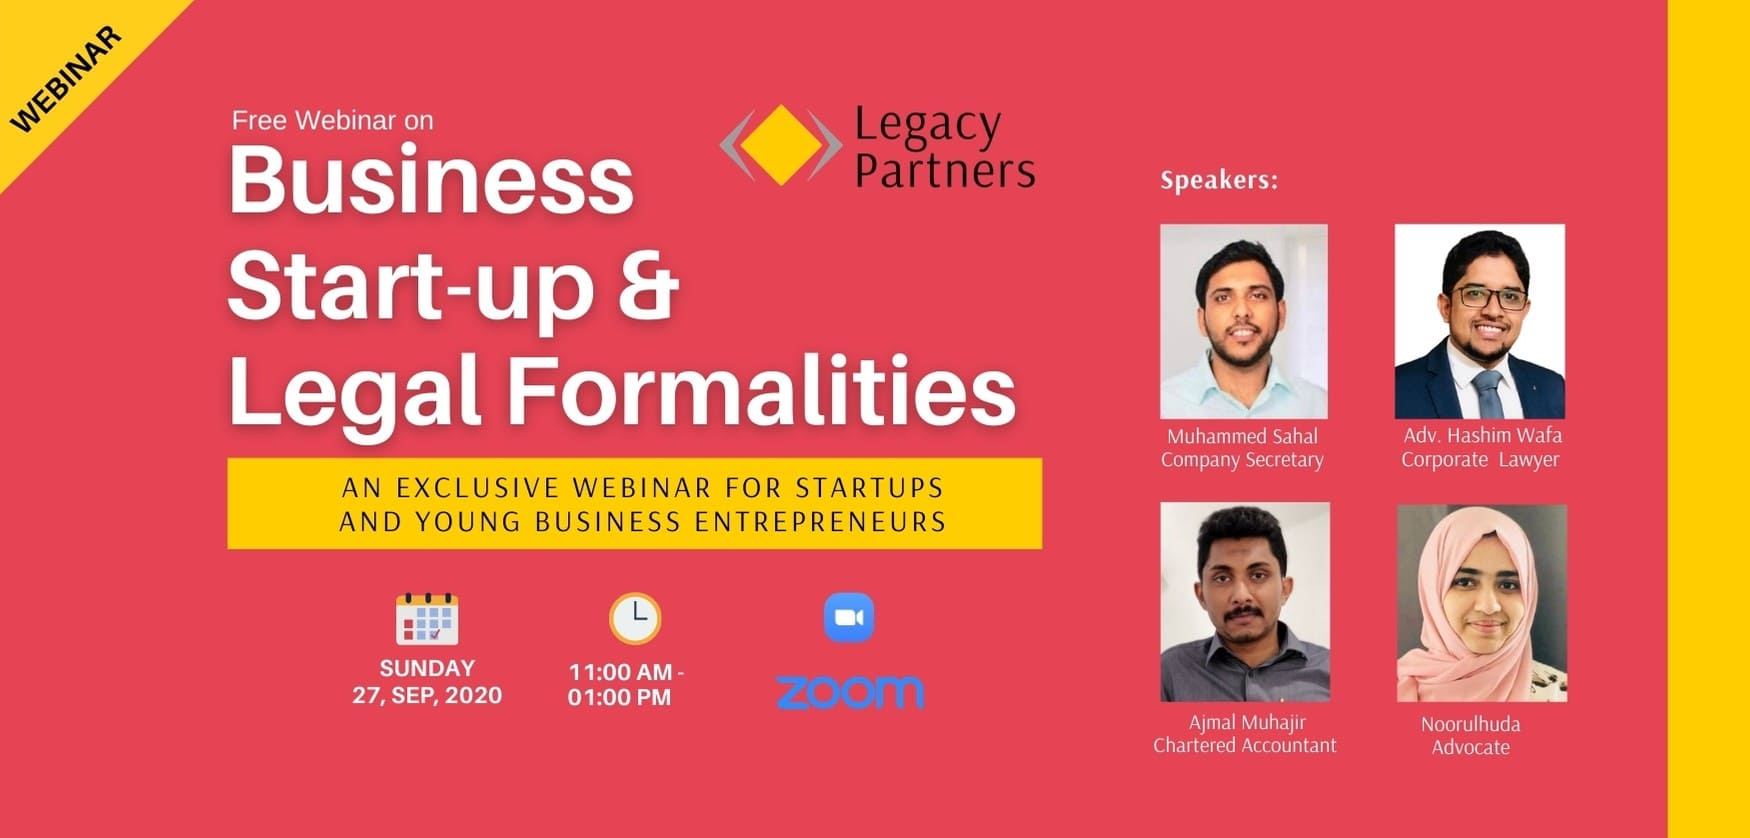 Free Webinar on Business Startup & Legal Formalities